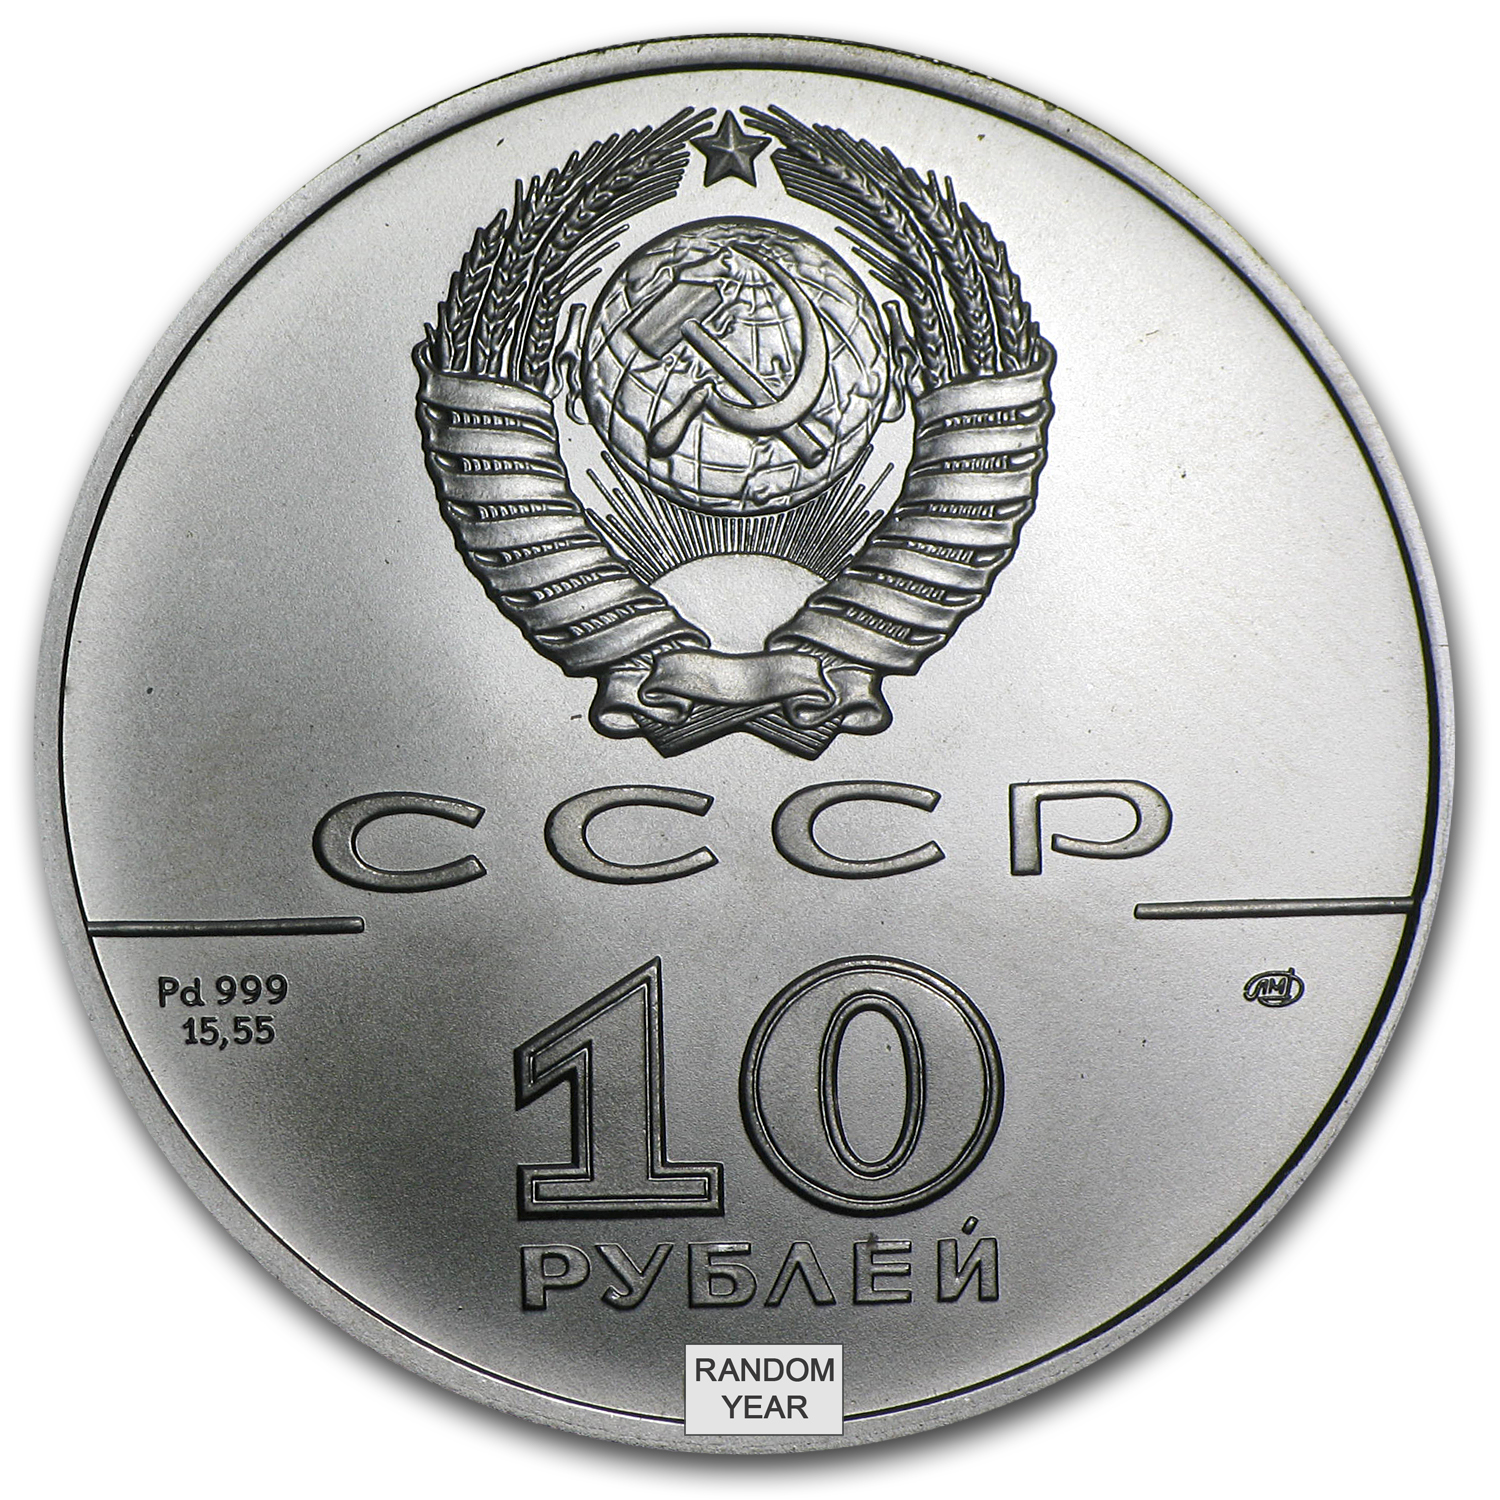 1/2 oz Palladium Russian Ballerina (Random Year)